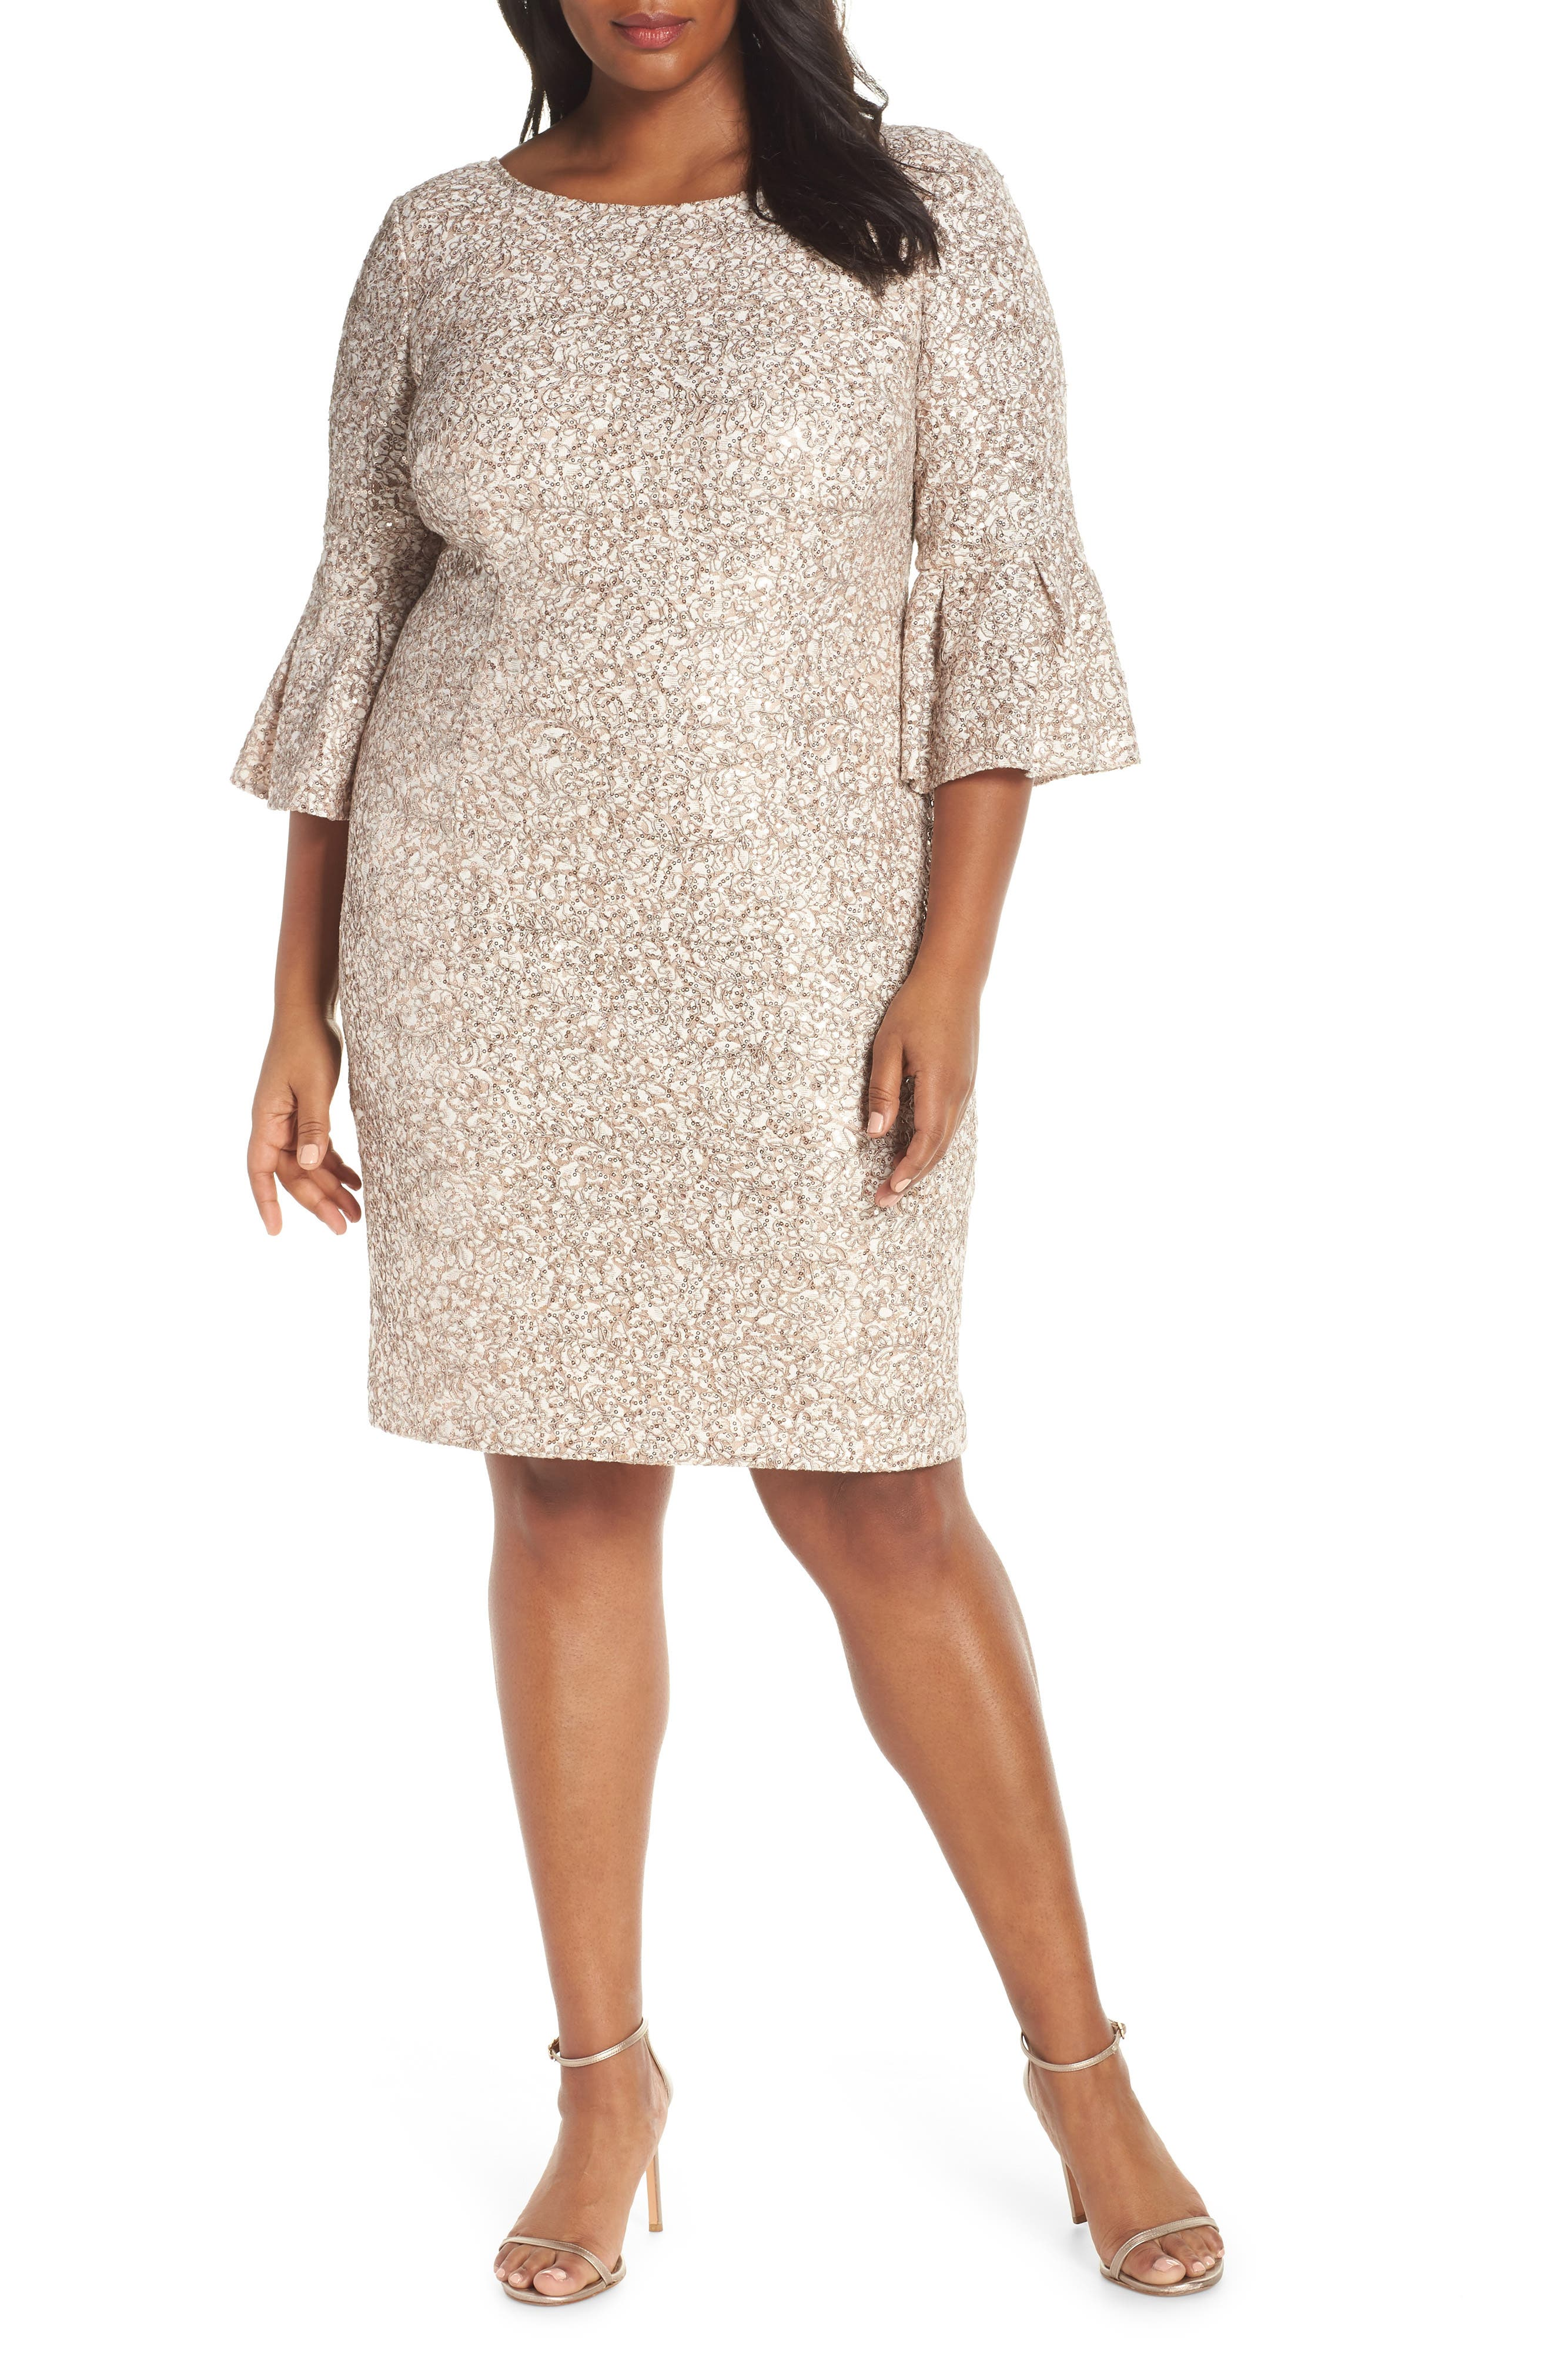 Embroidered Lace Shift Dress,                         Main,                         color, CHAMPAGNE/ IVORY